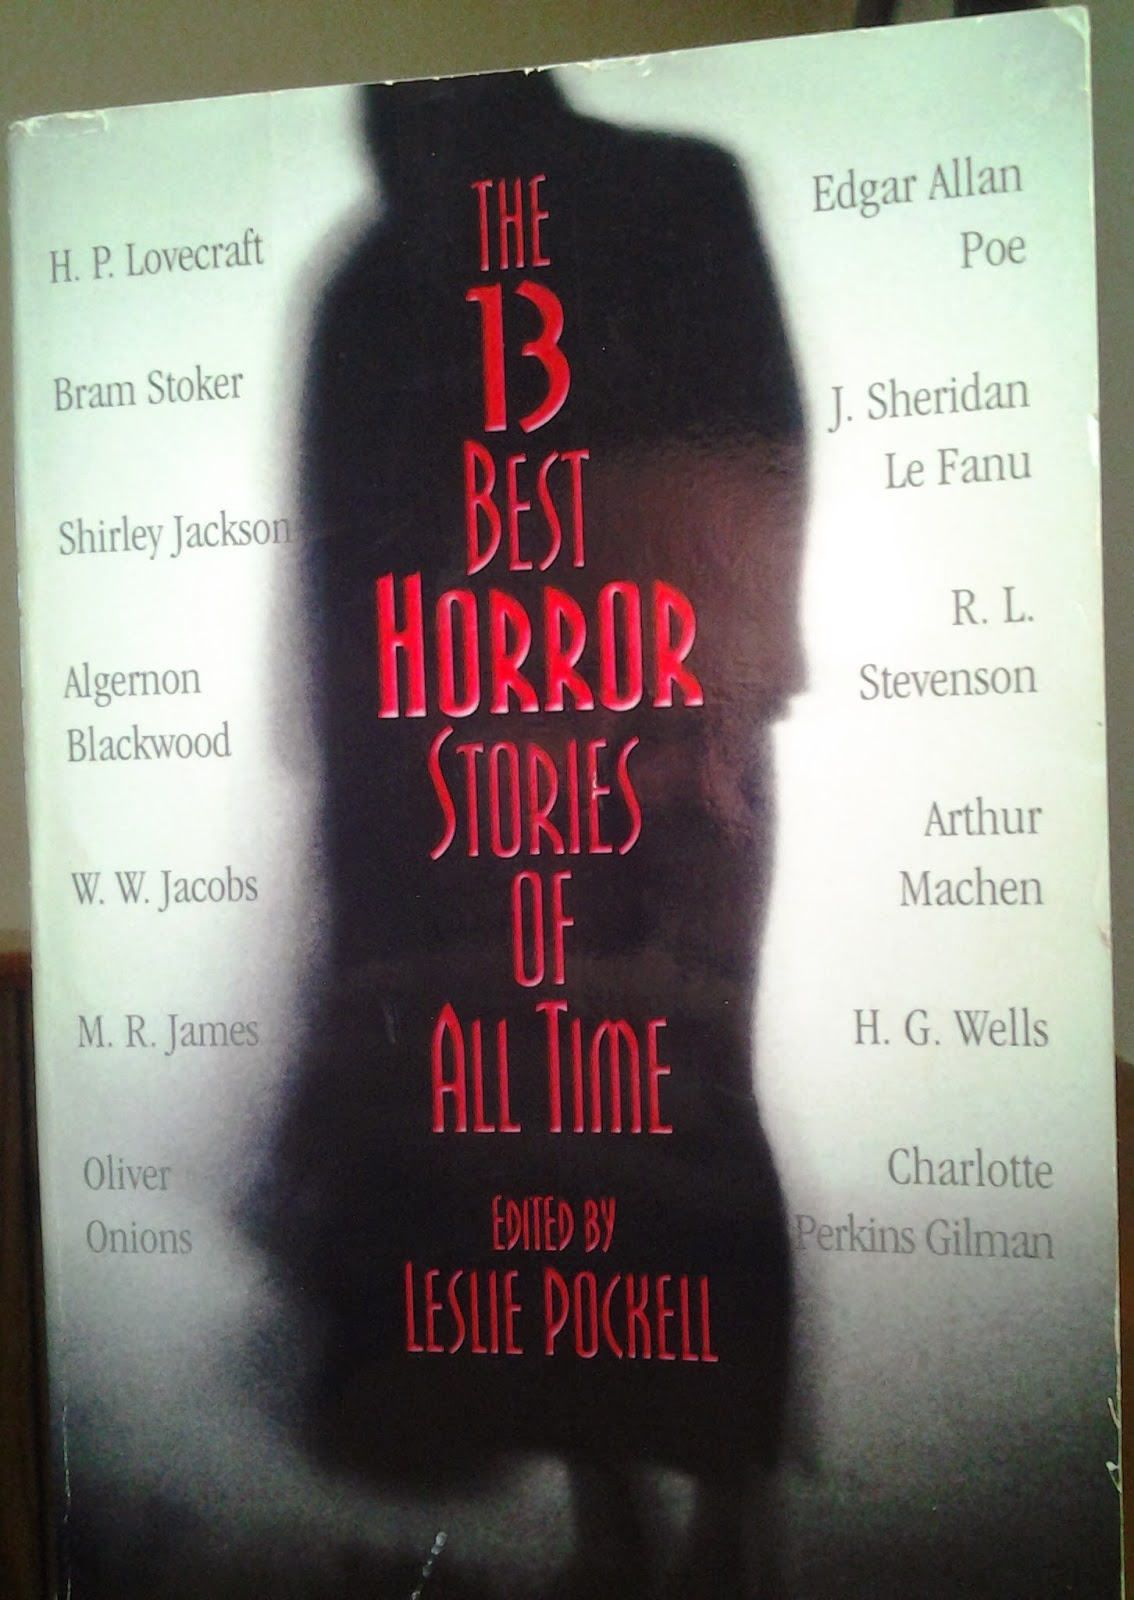 The 13 Best Horror Stories of All Time edited by Leslie Pockell, Warner Books